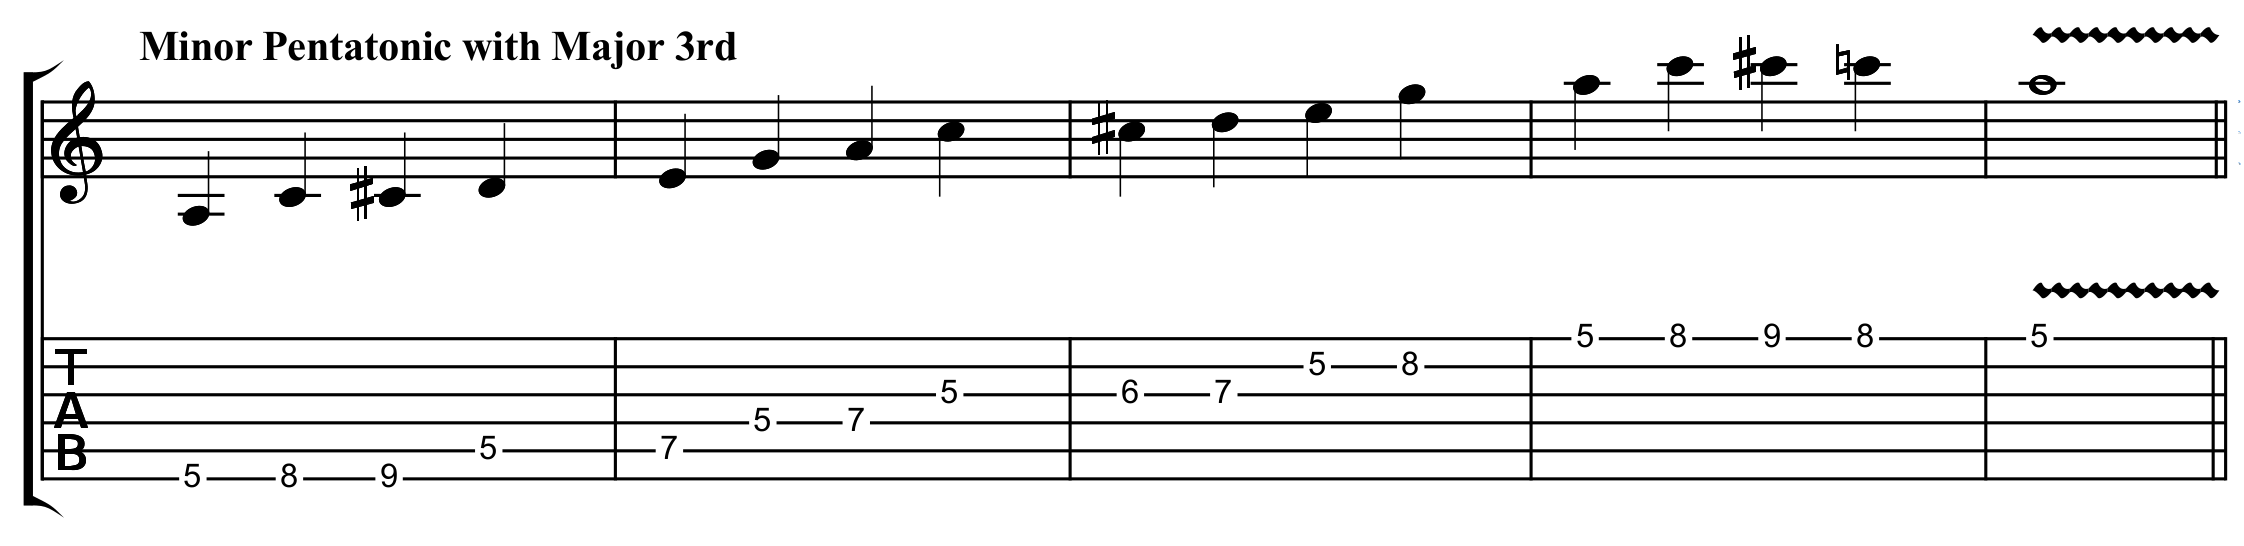 the minor pentatonic scale in A with major thirds added